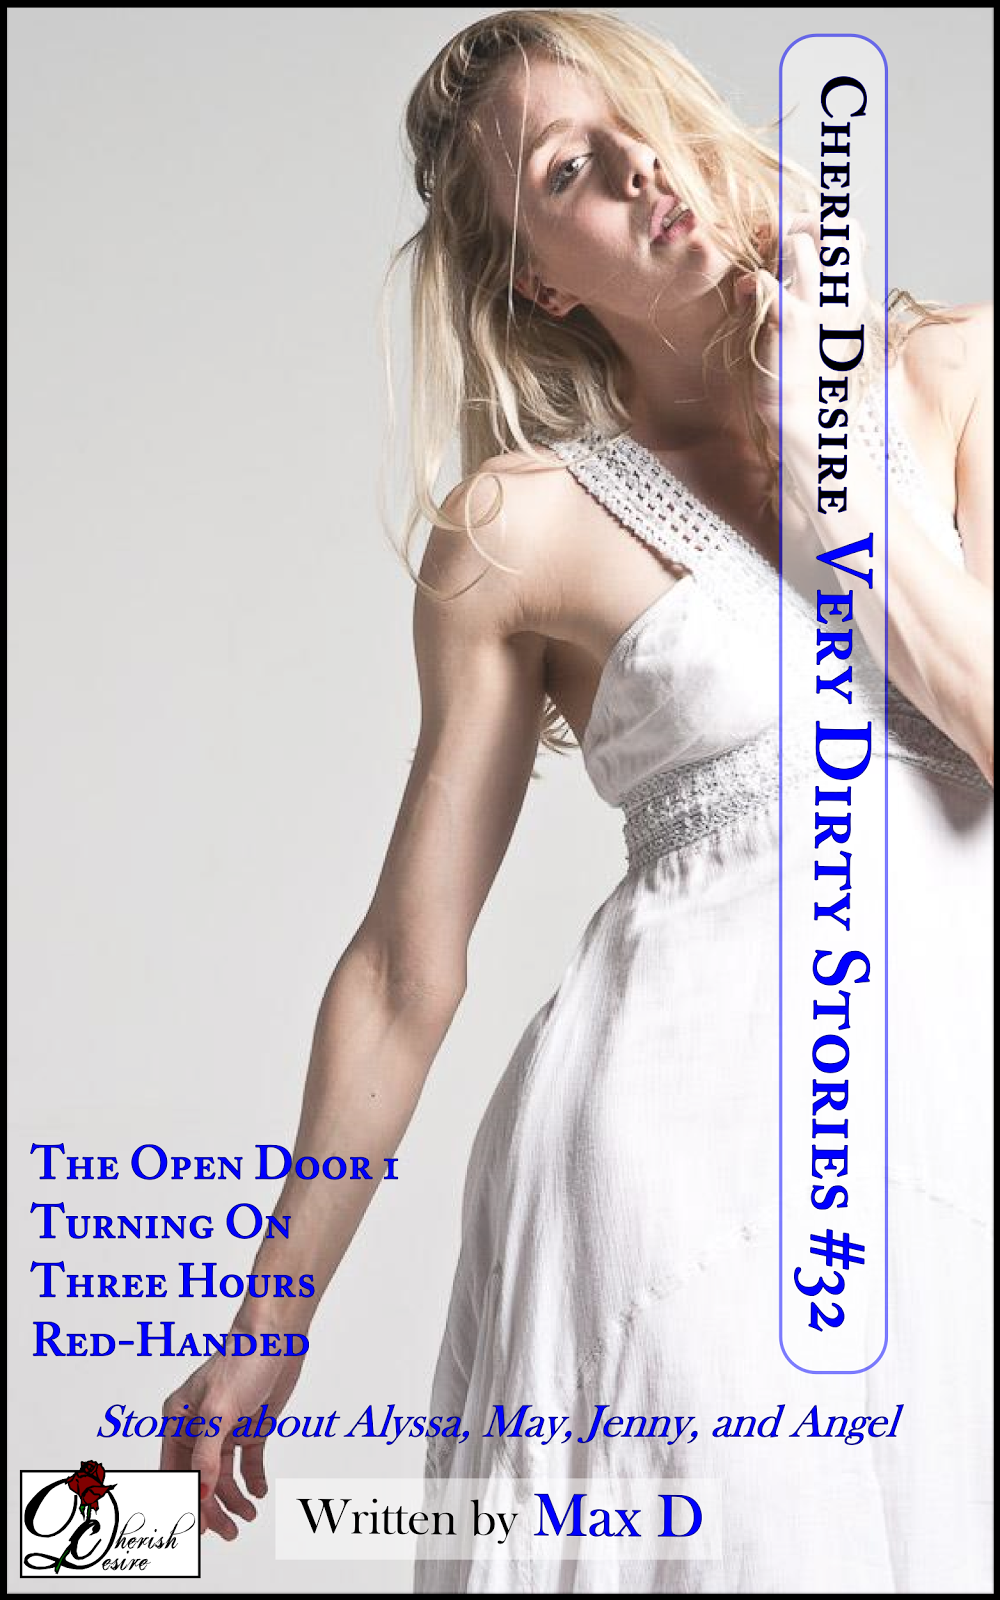 Cherish Desire: Very Dirty Stories #32, Max D, erotica